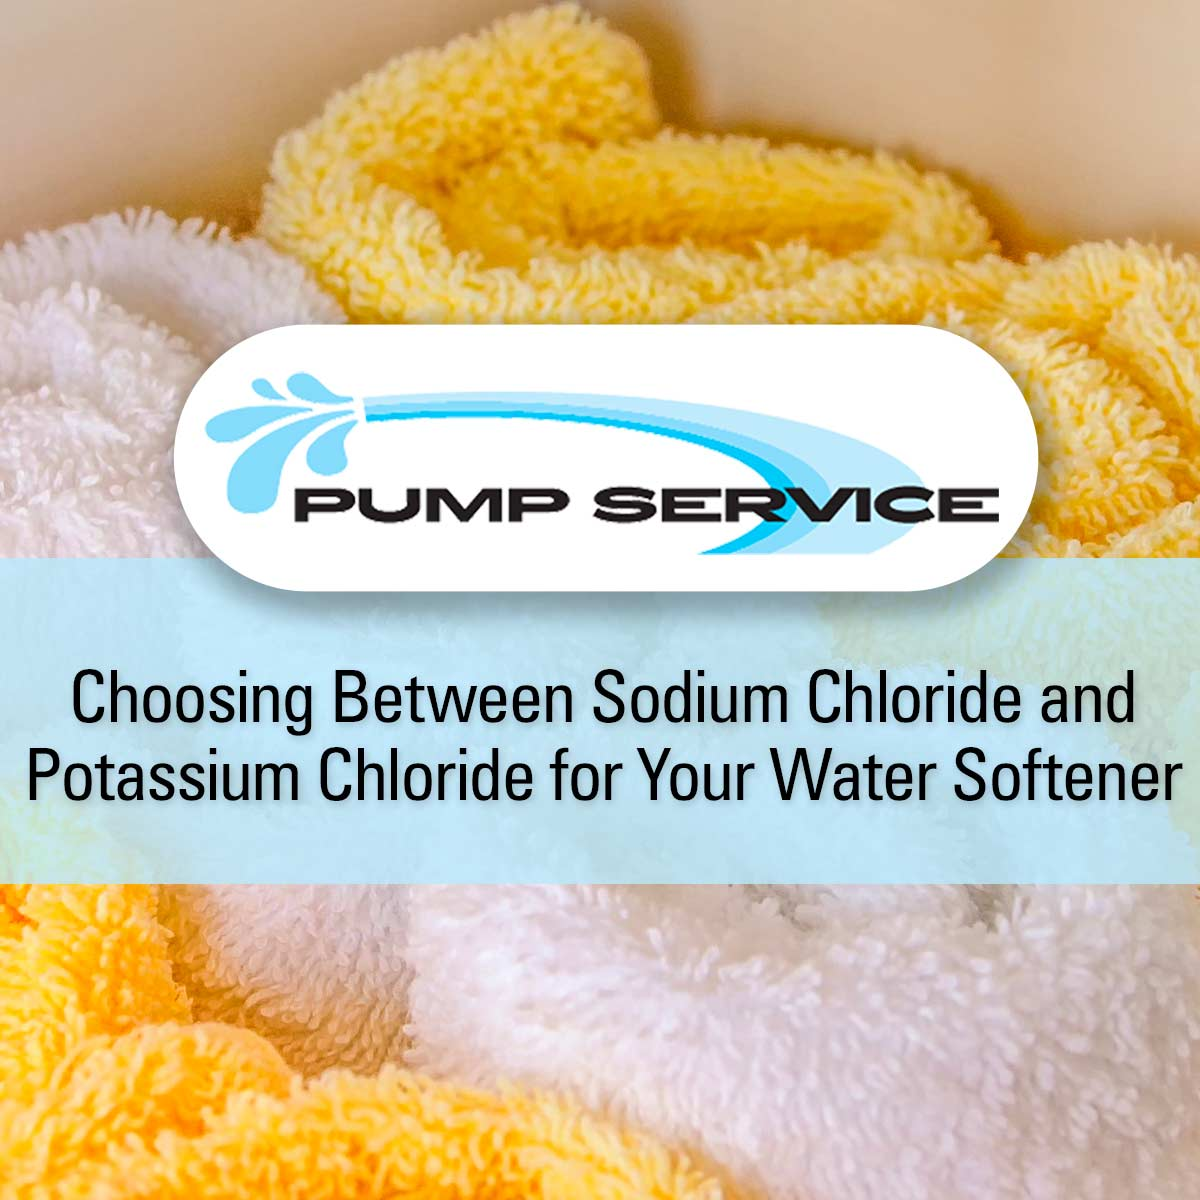 Choosing Between Sodium Chloride and Potassium Chloride for Your Water Softener